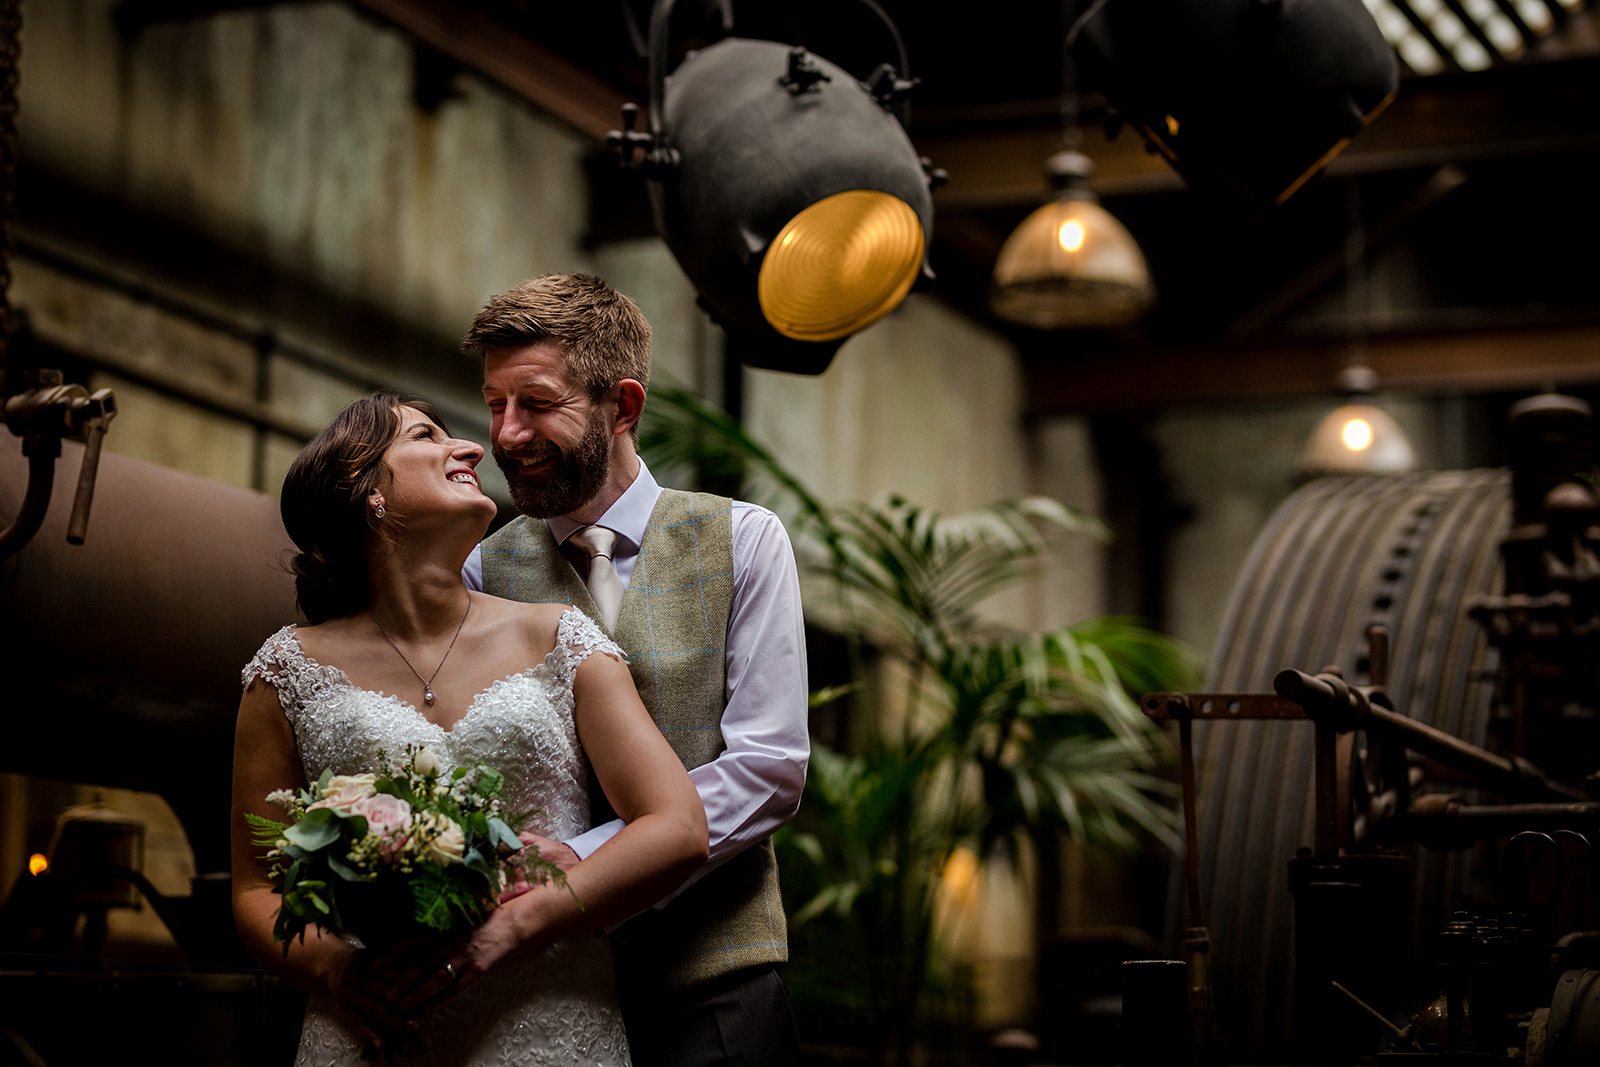 Authentic Smiles & Real Moments at a Fun Family Wedding at Holmes Mill